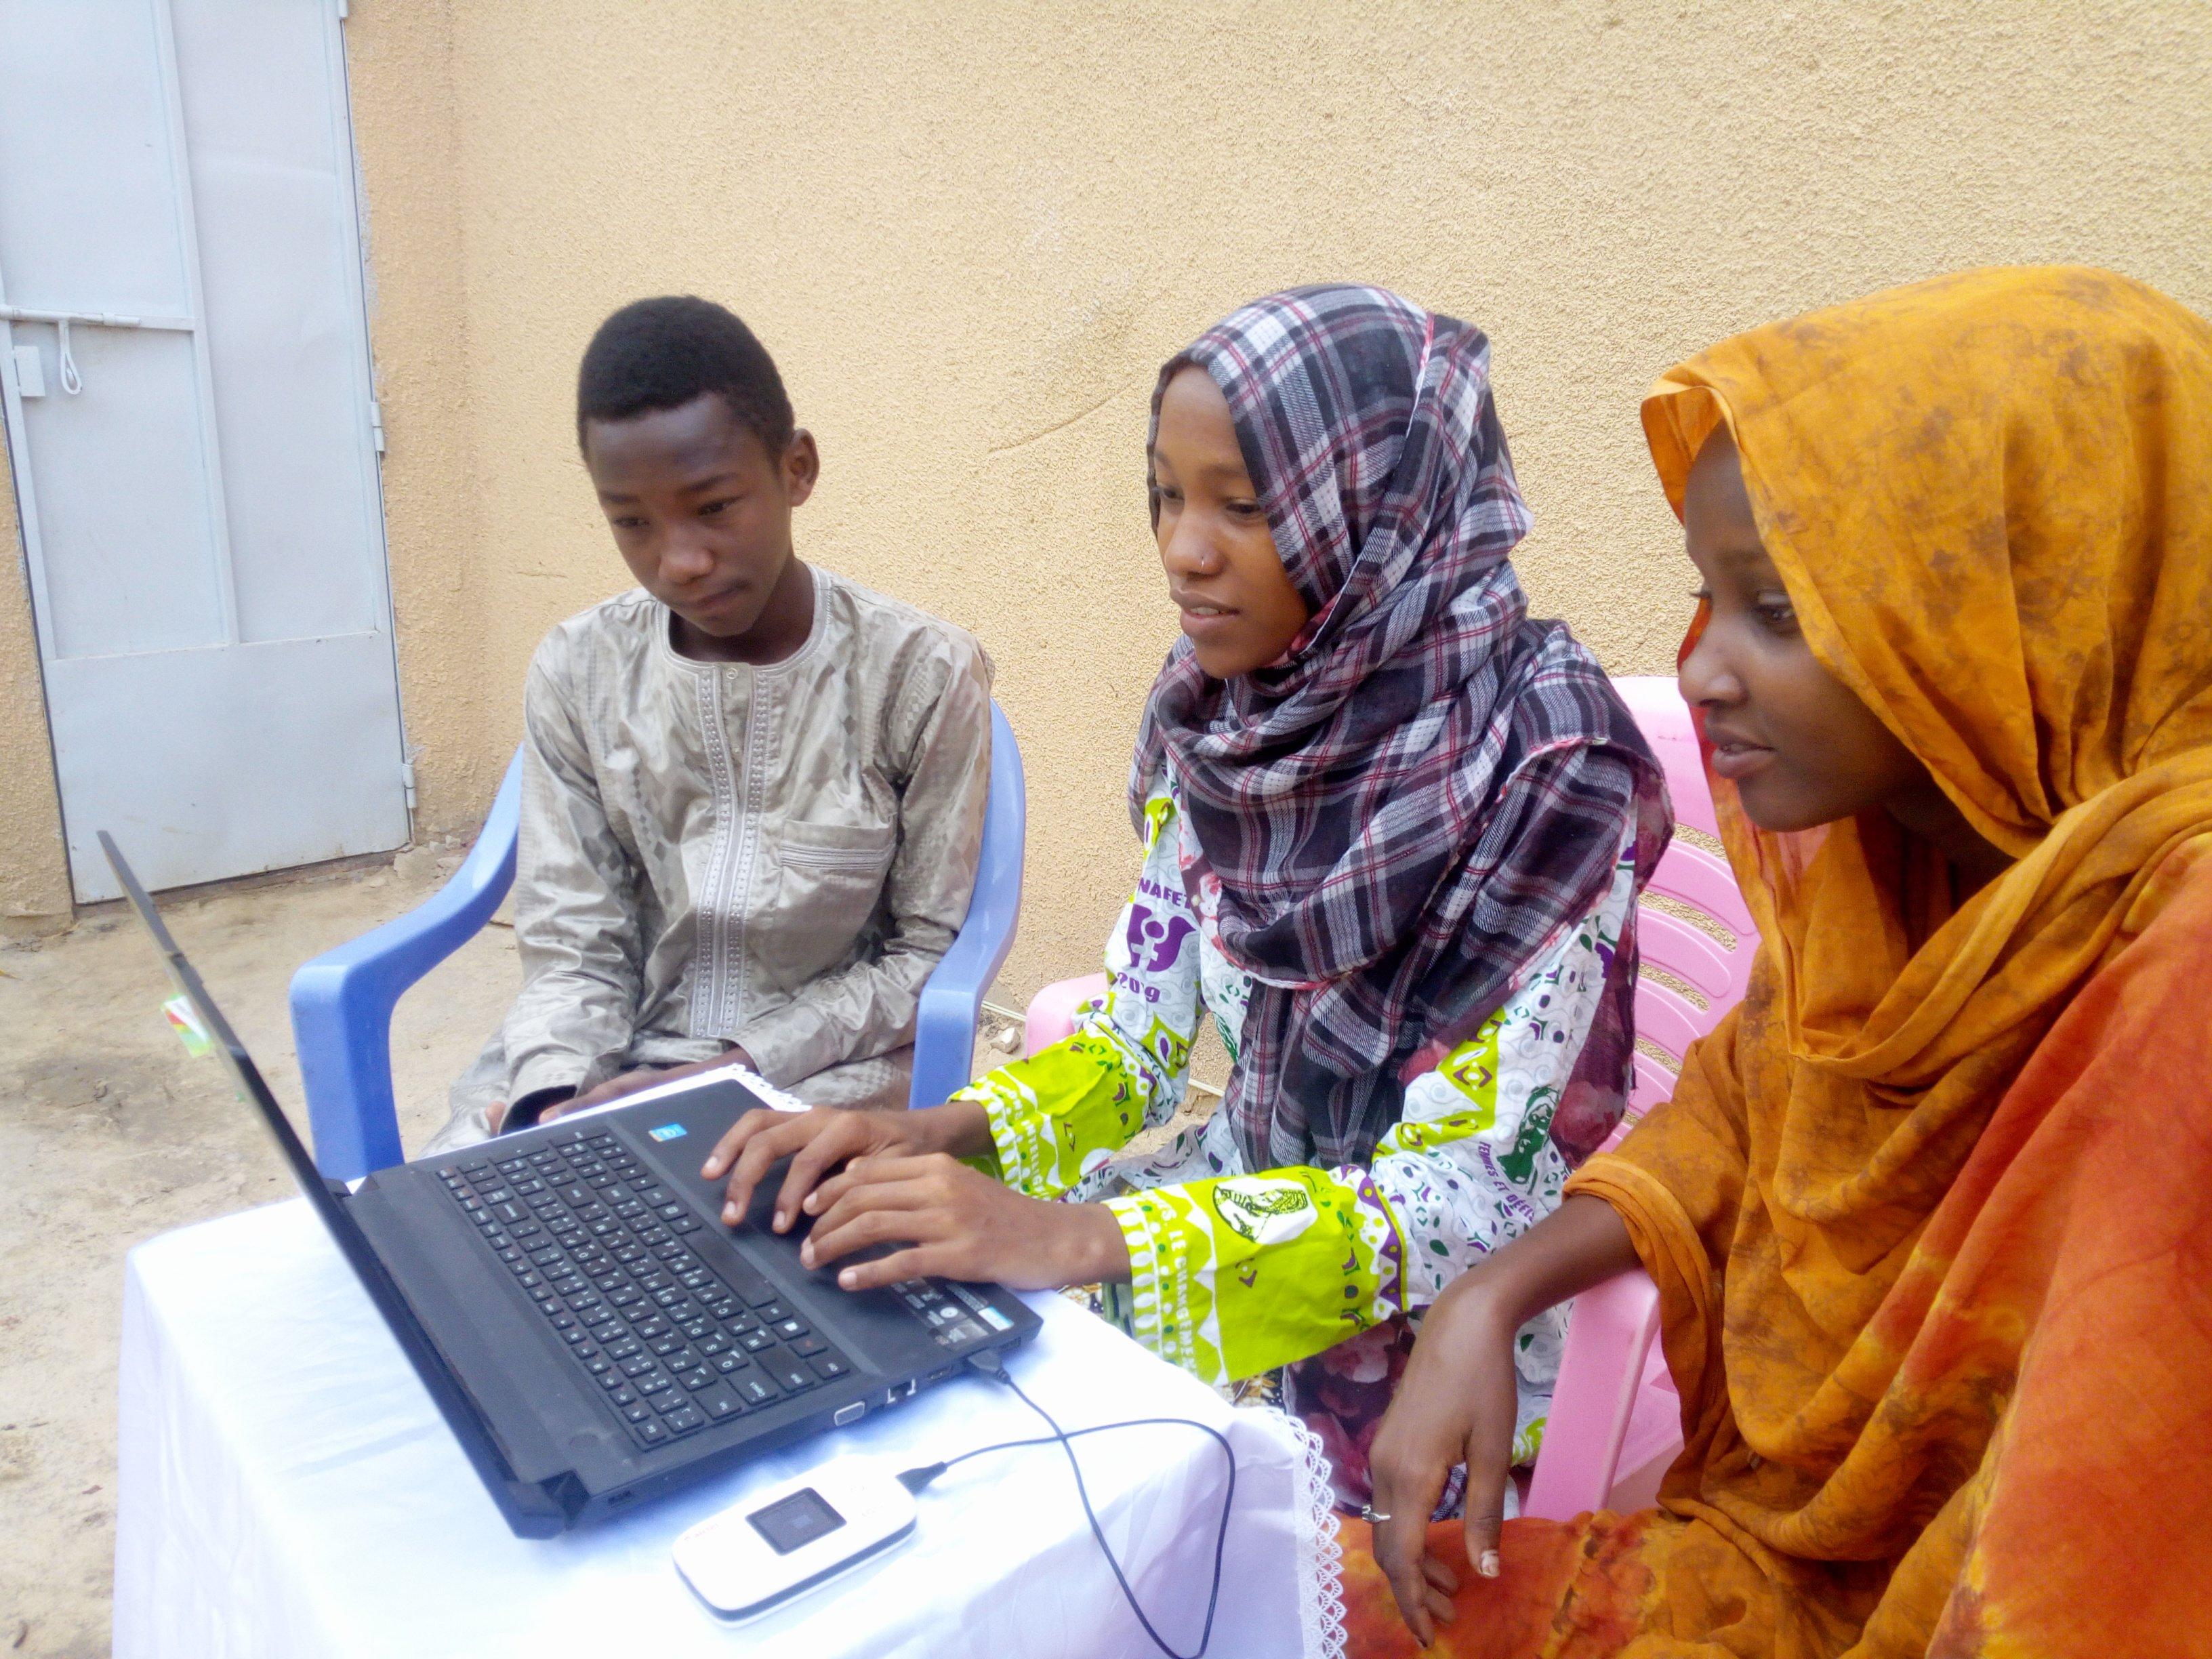 Chamsa Al Marif Nime, a Digital Grassroots Ambassador from Chad, sits with two other young people as they use a computer connected to a mobile internet modem